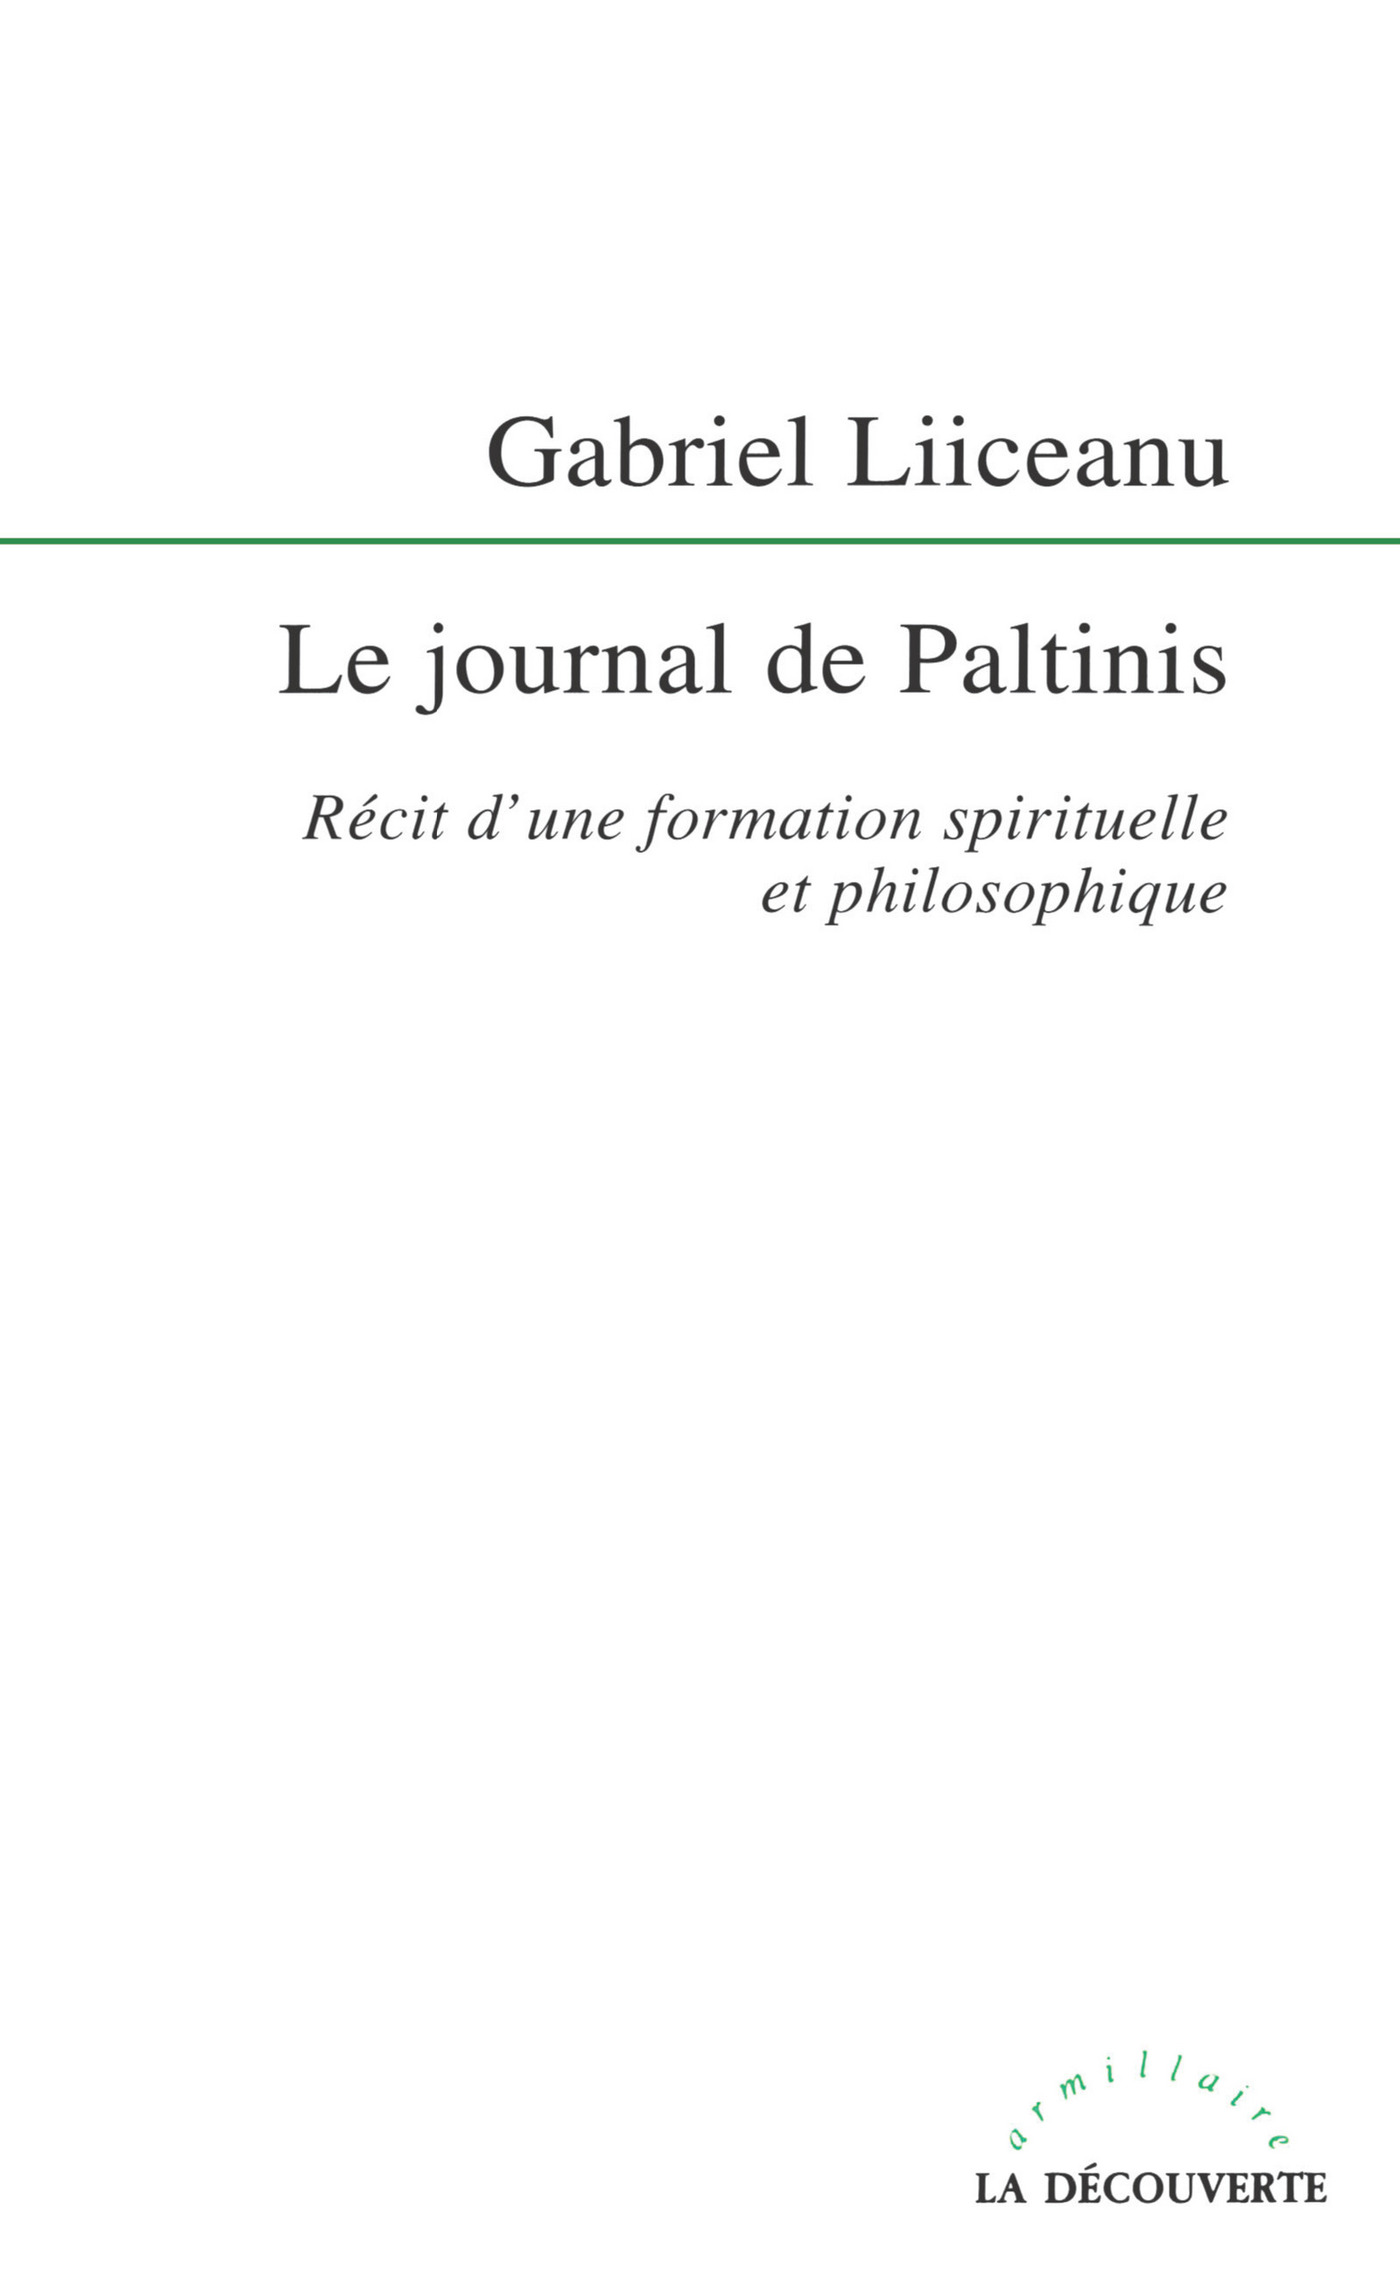 Le journal de Paltinis